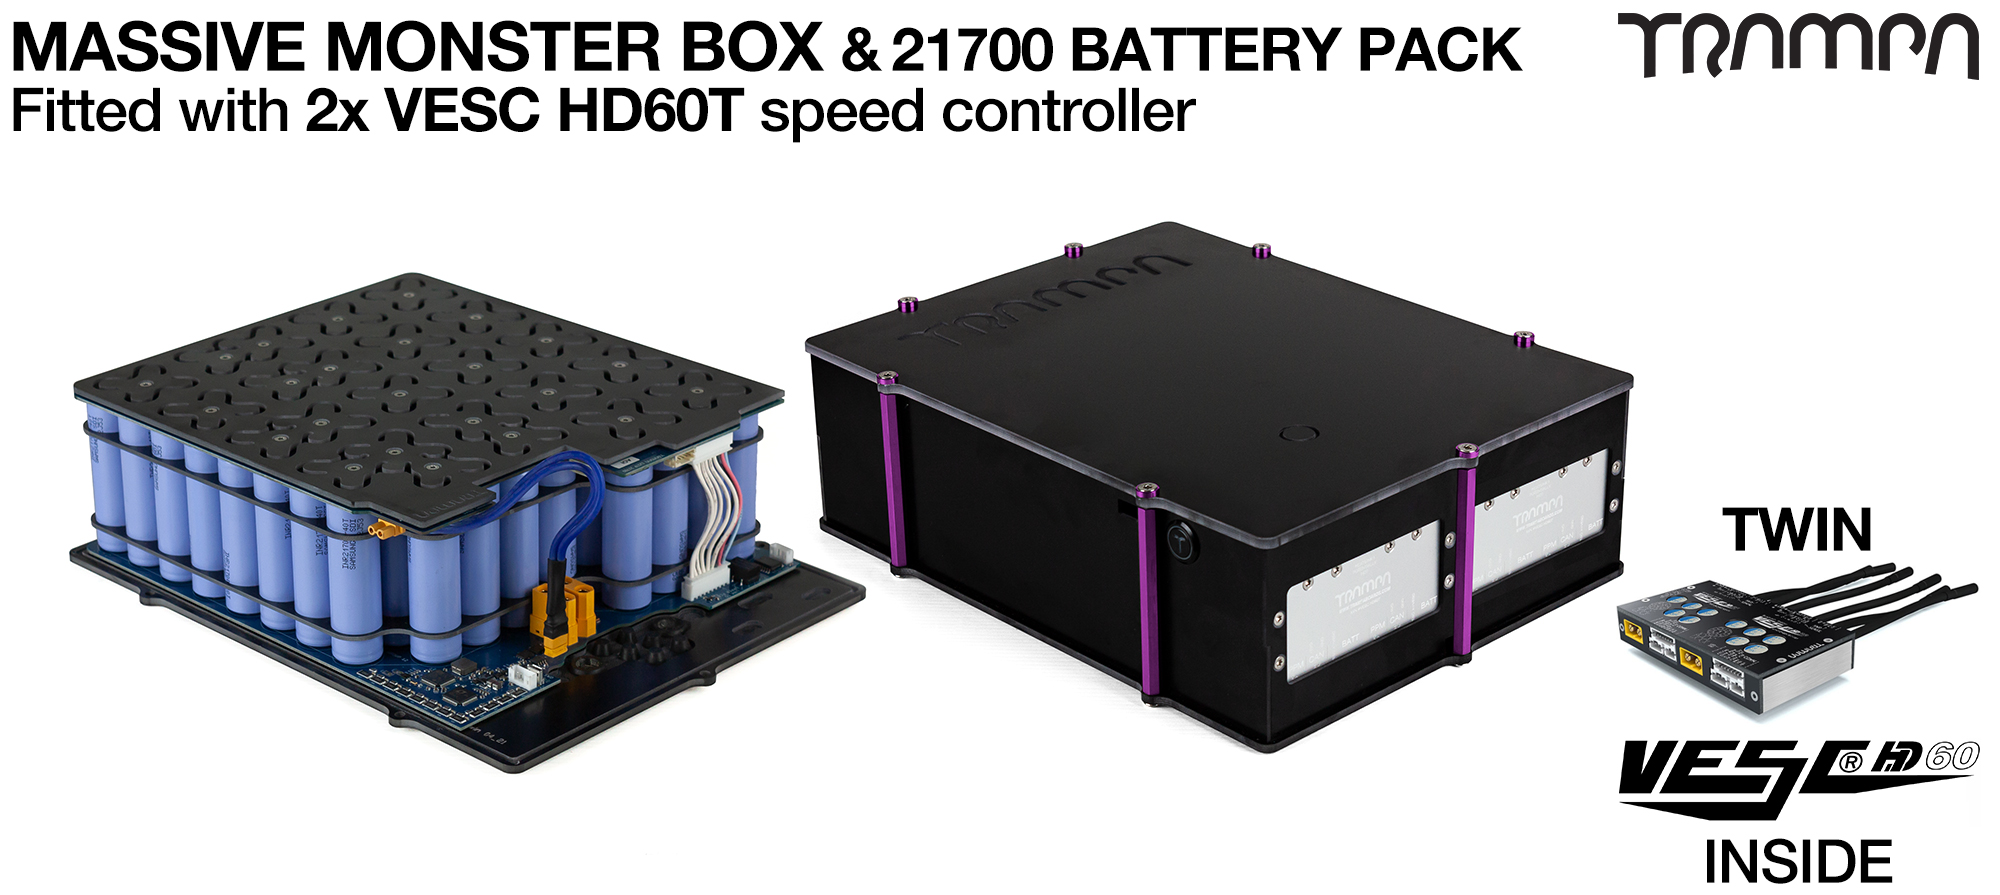 21700 MASSIVE MONSTER Box with 21700 PCB Pack with 2x VESC HD-60Twin & 84x 21700 cells 12s7p = 35Ah - Specifically made to work in conjunction with TRAMPA's Electric Decks but can be adapted to fit anything - UK Customers only